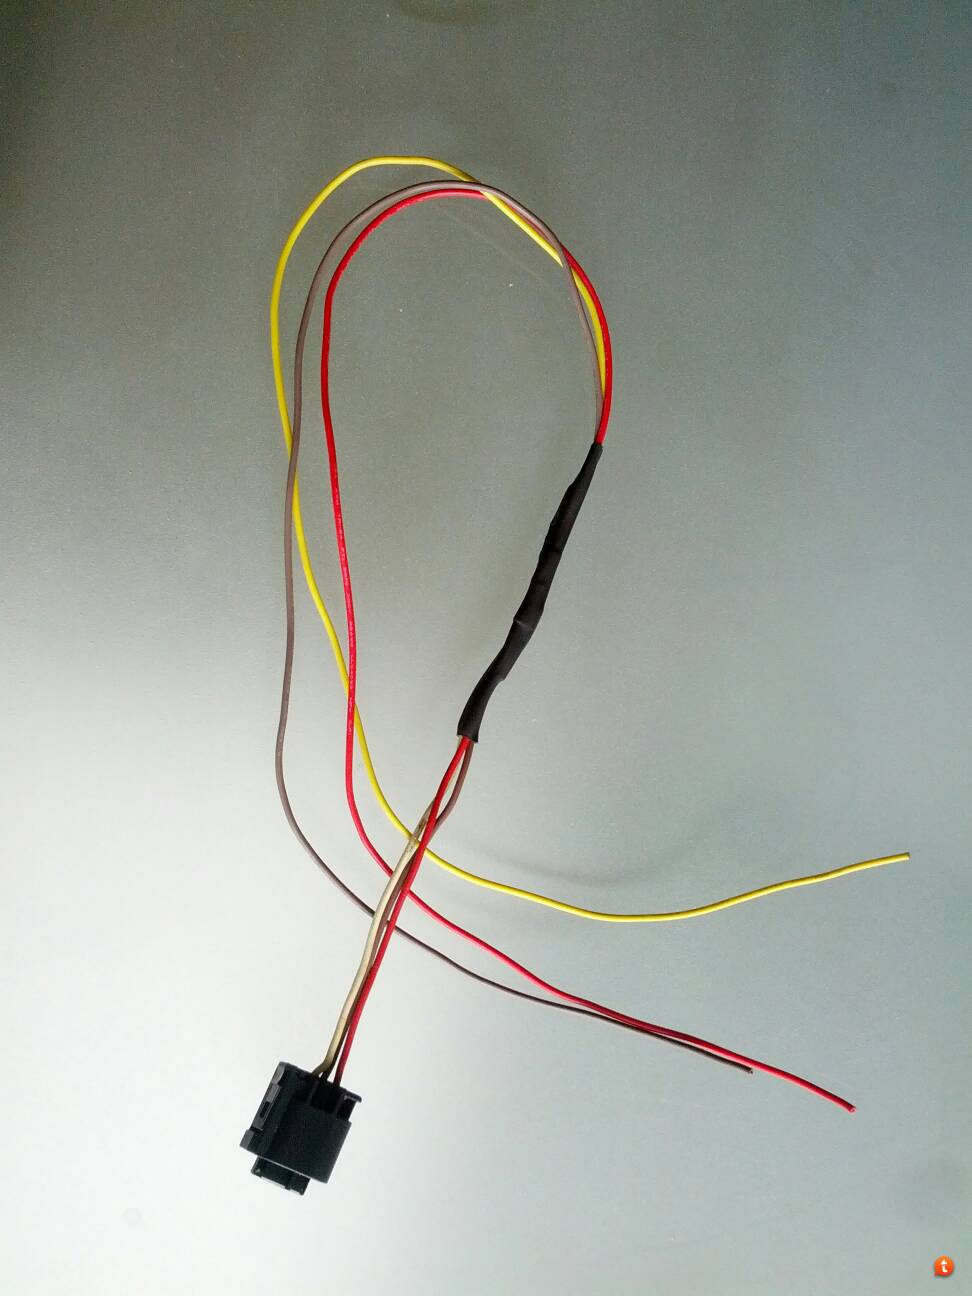 hight resolution of s40 no cruise control volvo 240 cruise control wiring diagram once the car was put back